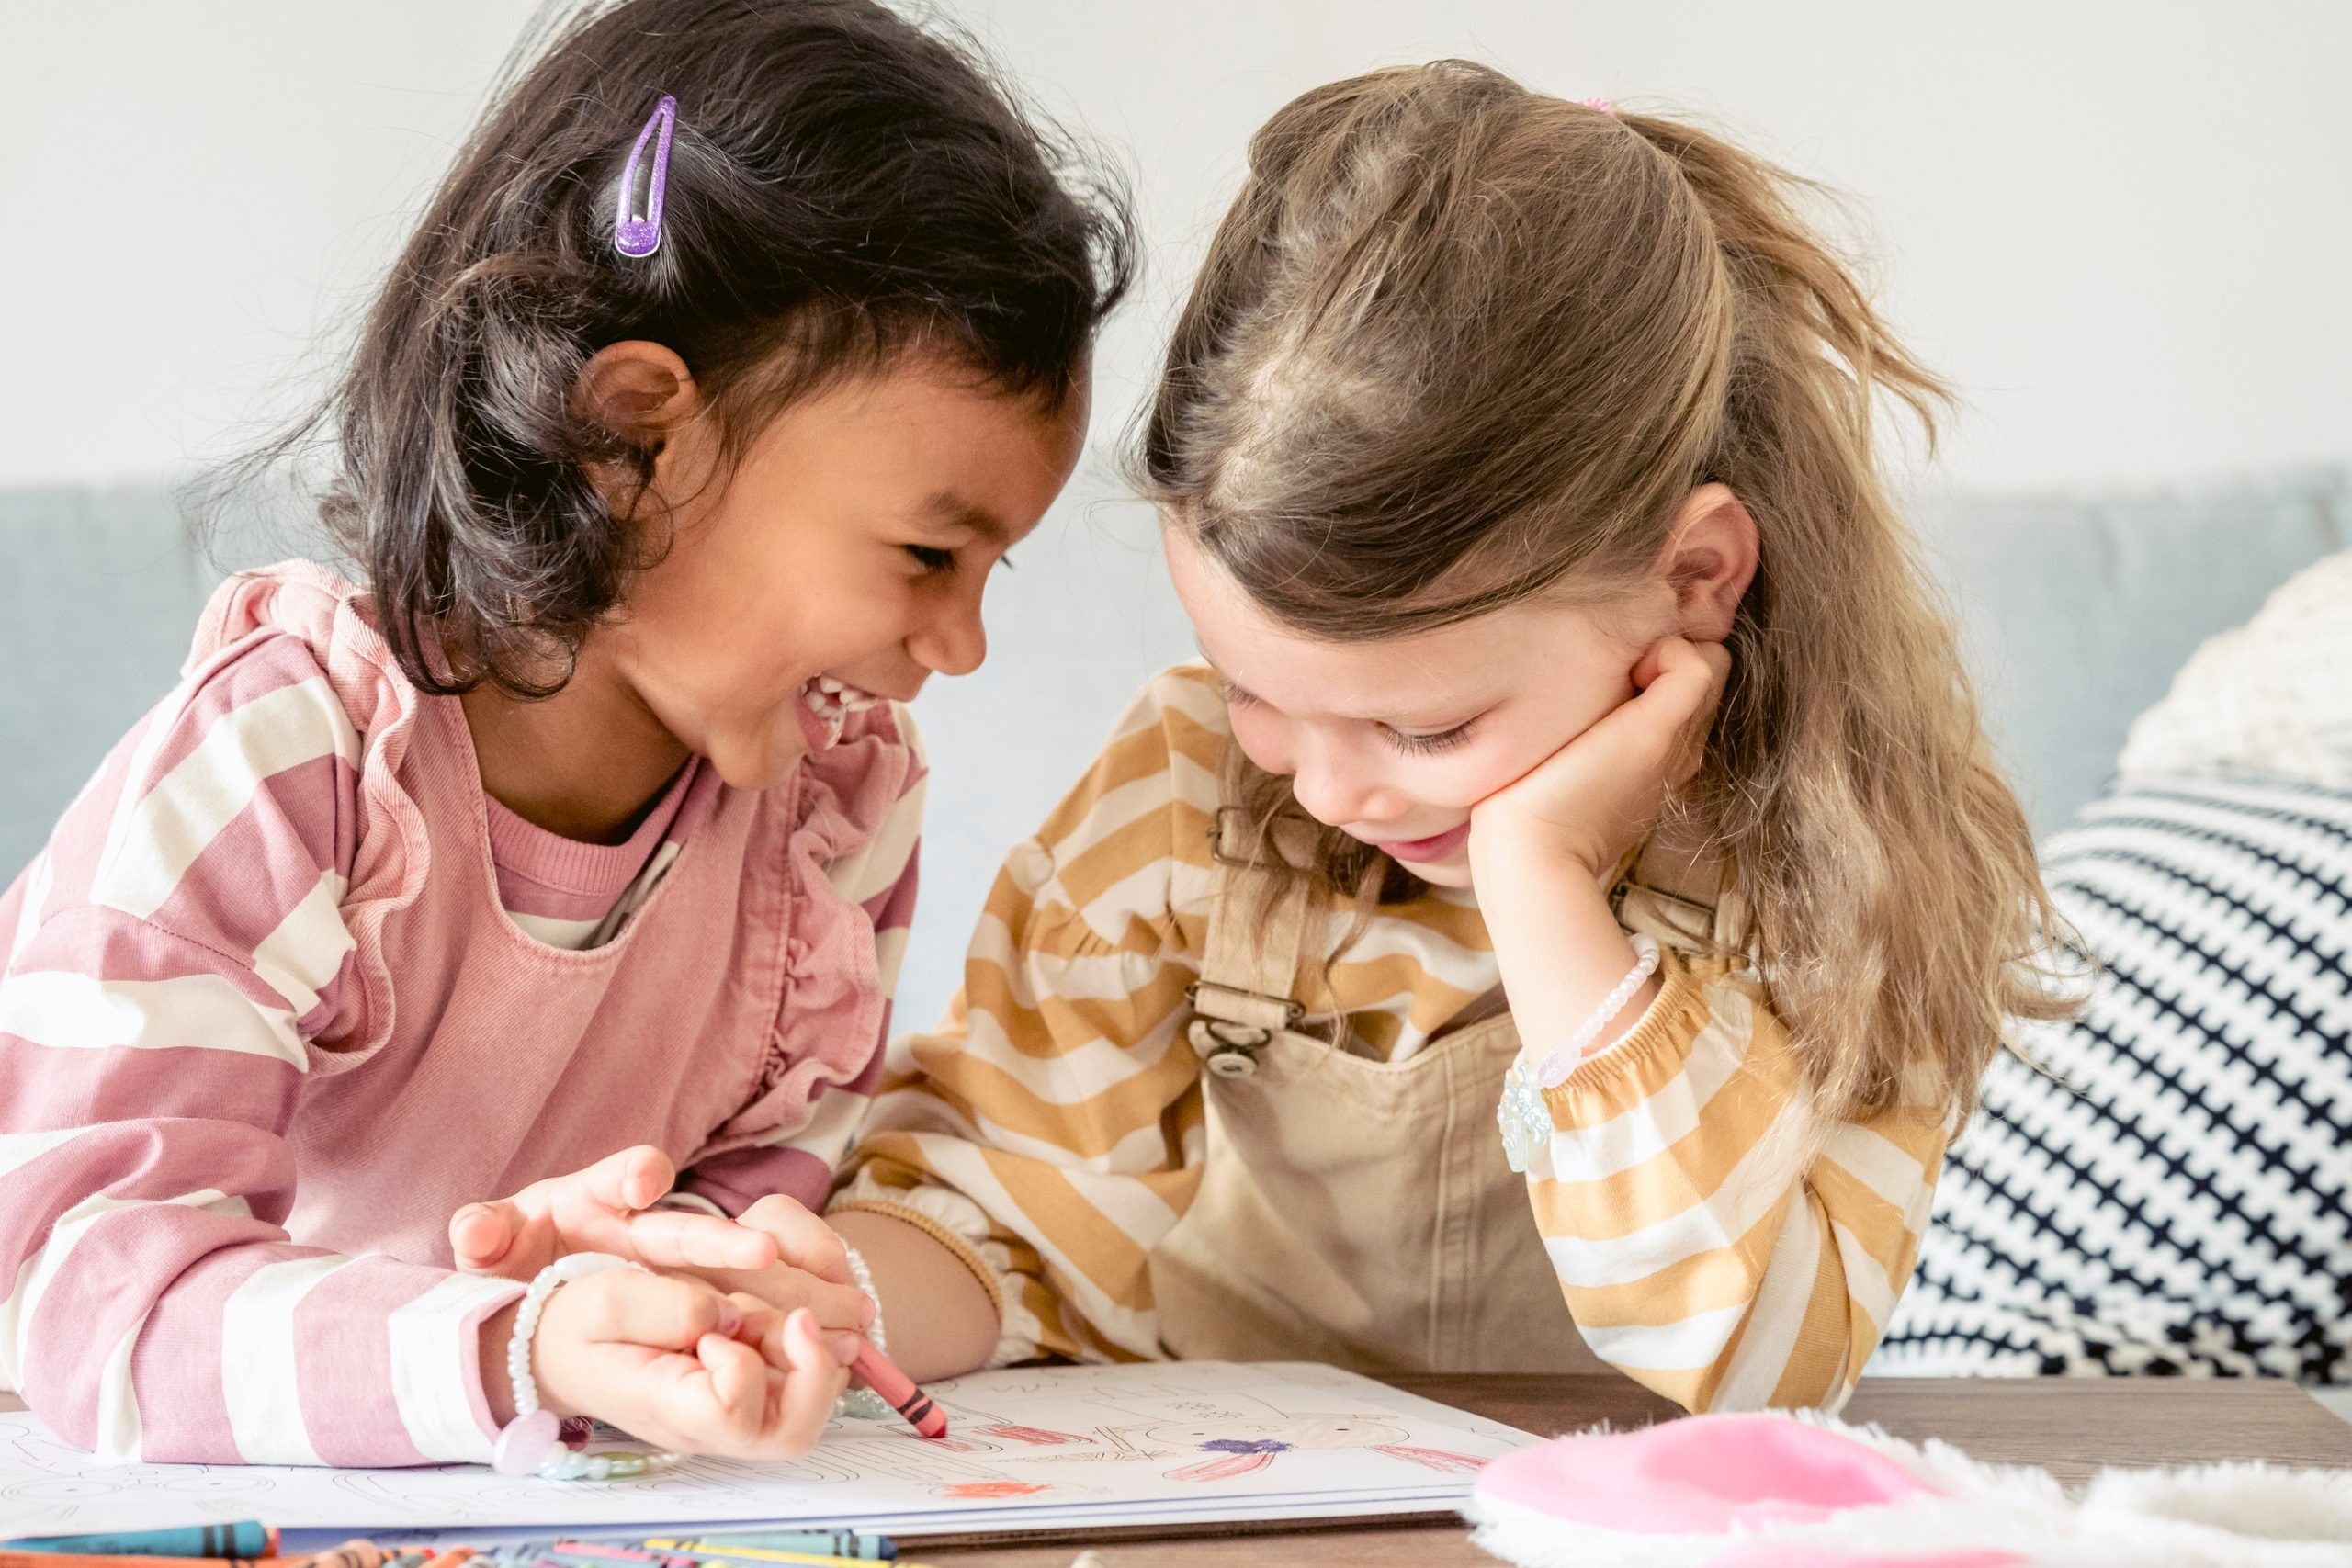 How to help your youngsters kickstart their friendship skills